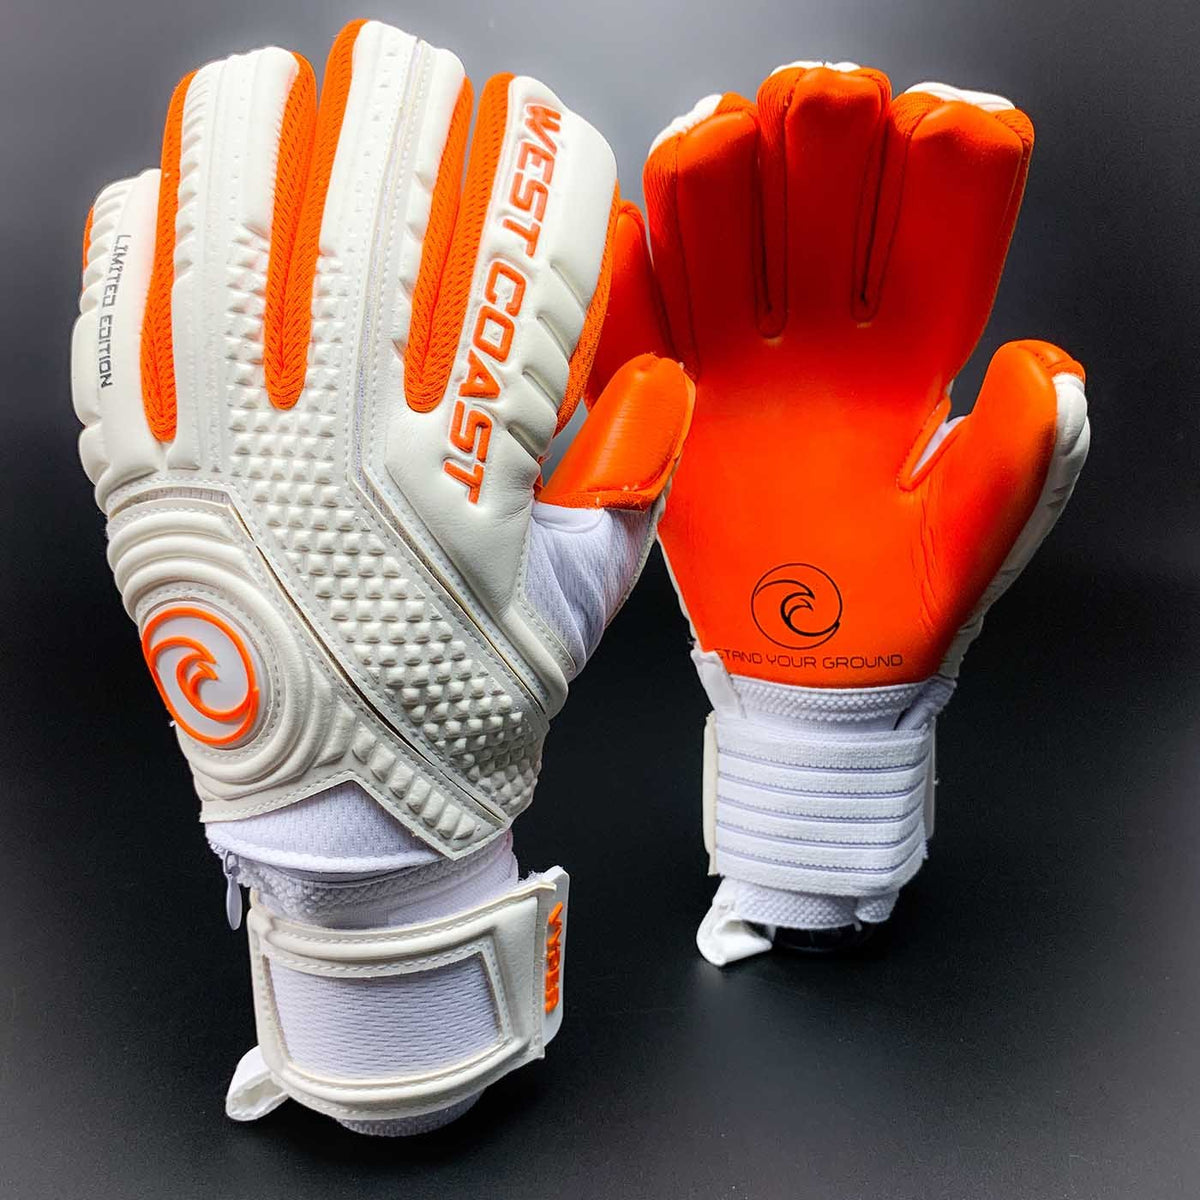 VYPER Ultimate Negative - Fingersave Goalkeeper Gloves West Coast Goalkeeping